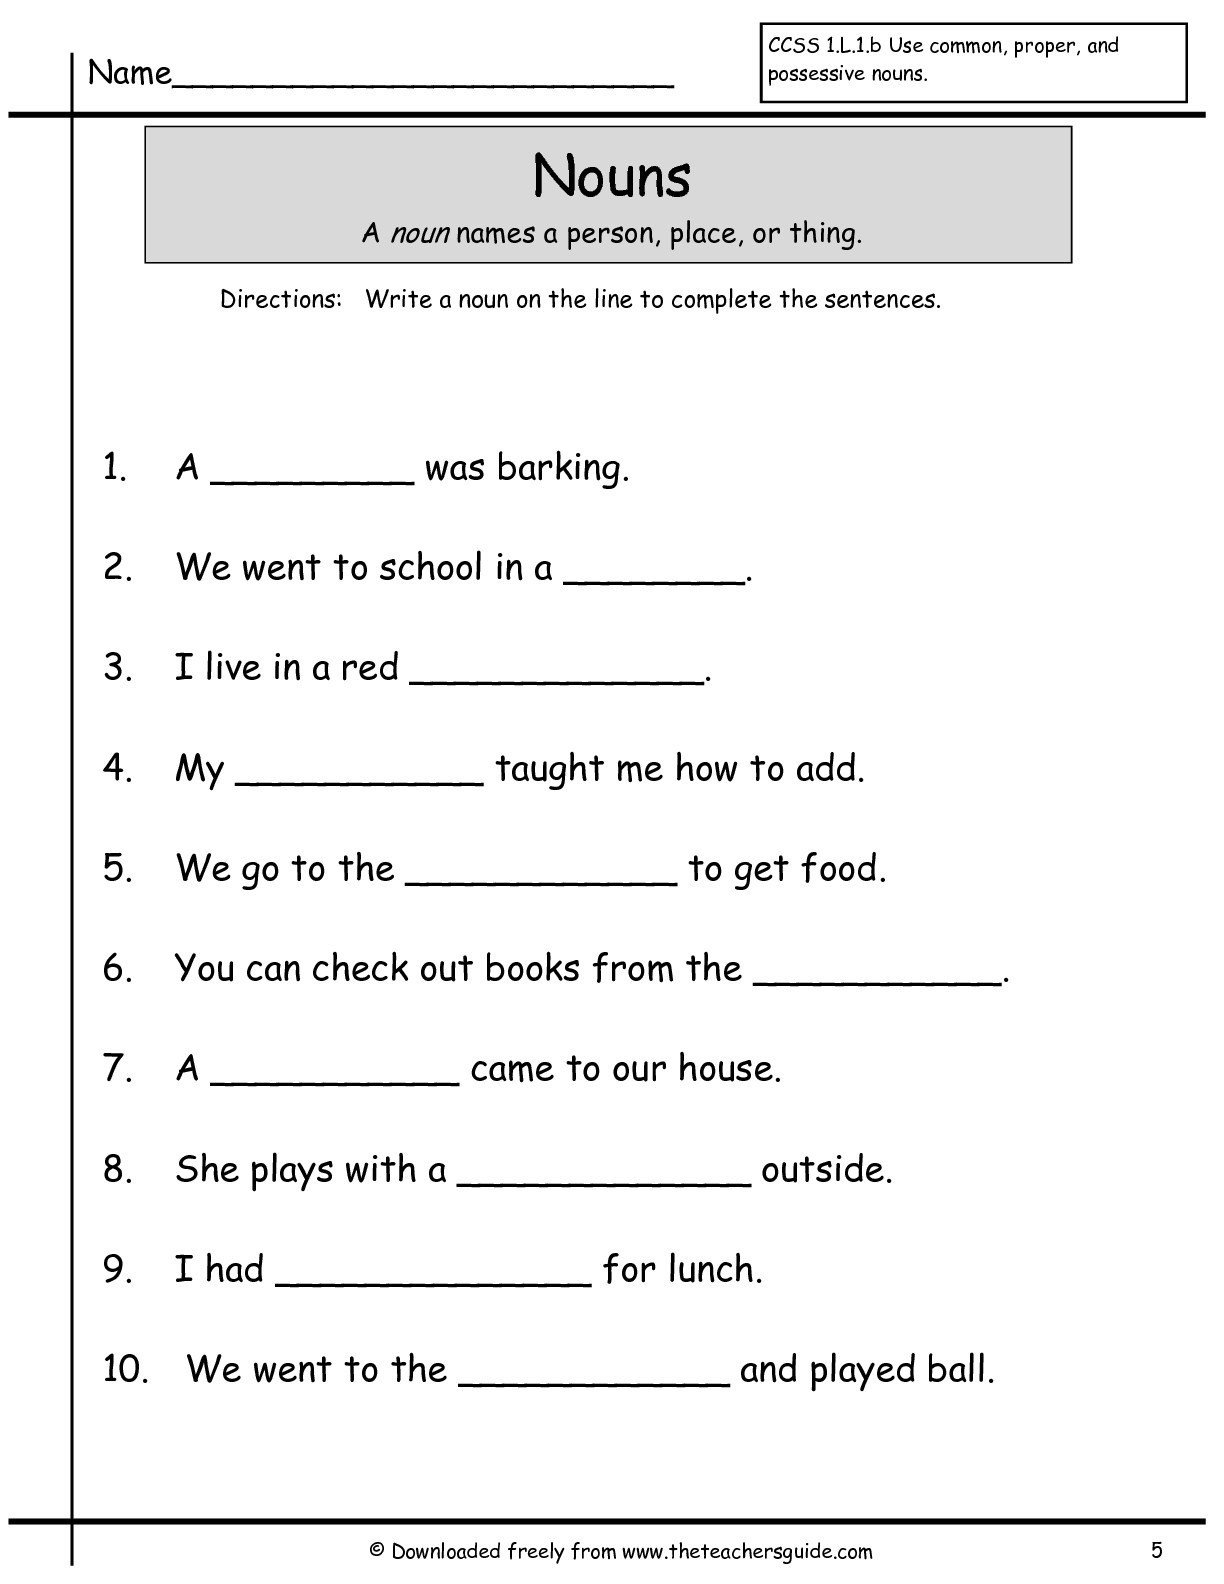 Seventh Grade social Studies Worksheets Globalpublicpolicywatch Page 202 Italian Culture Worksheets